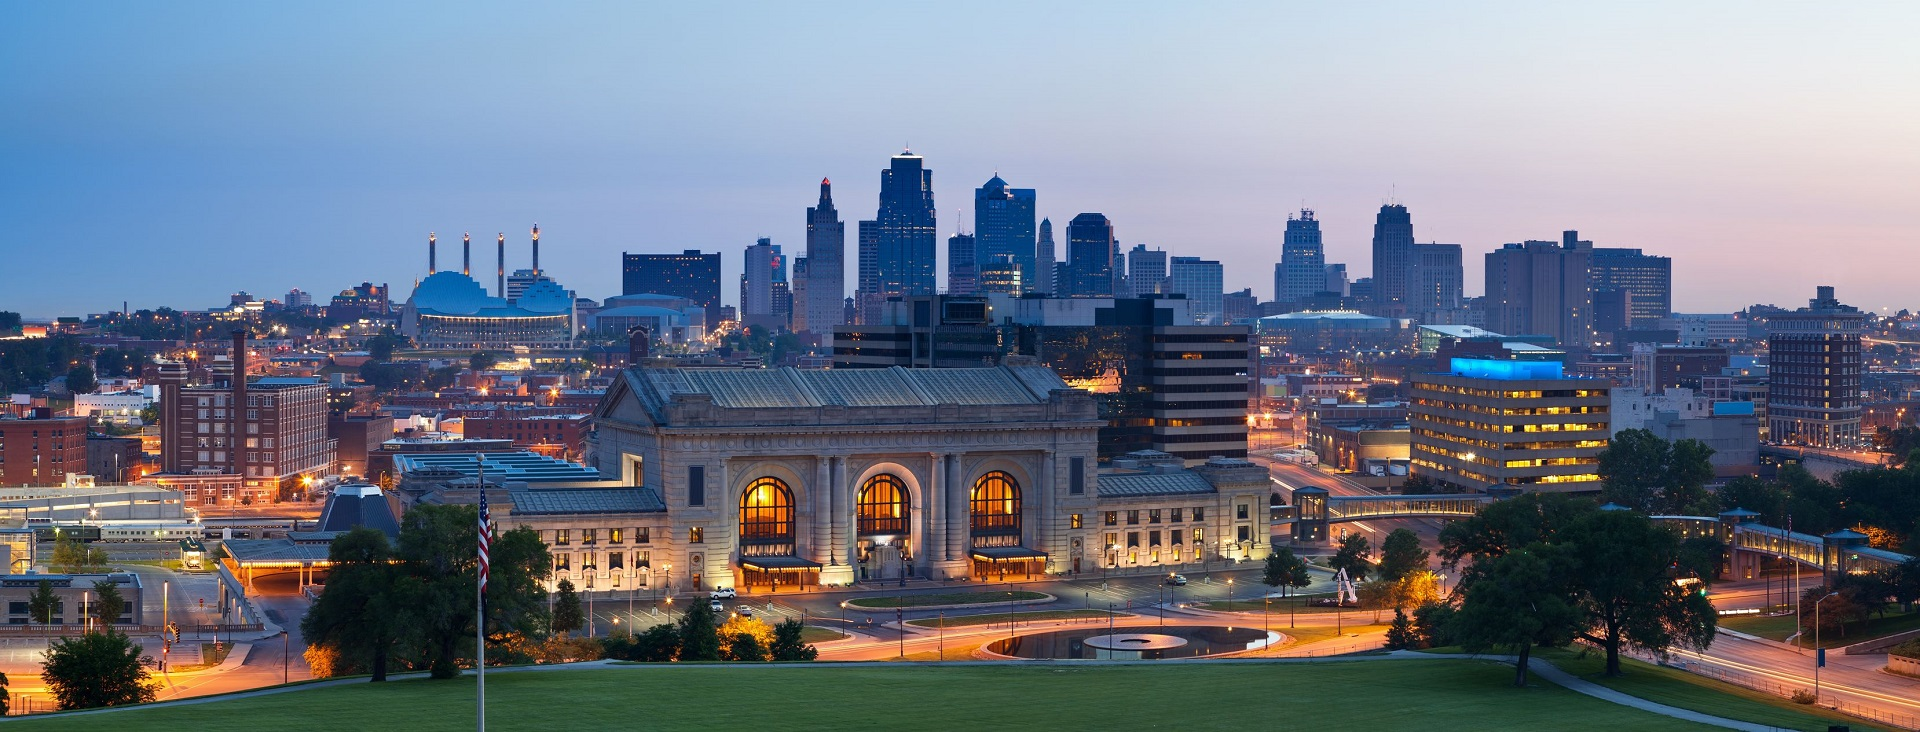 Kansas-City-Missouri-1.jpg